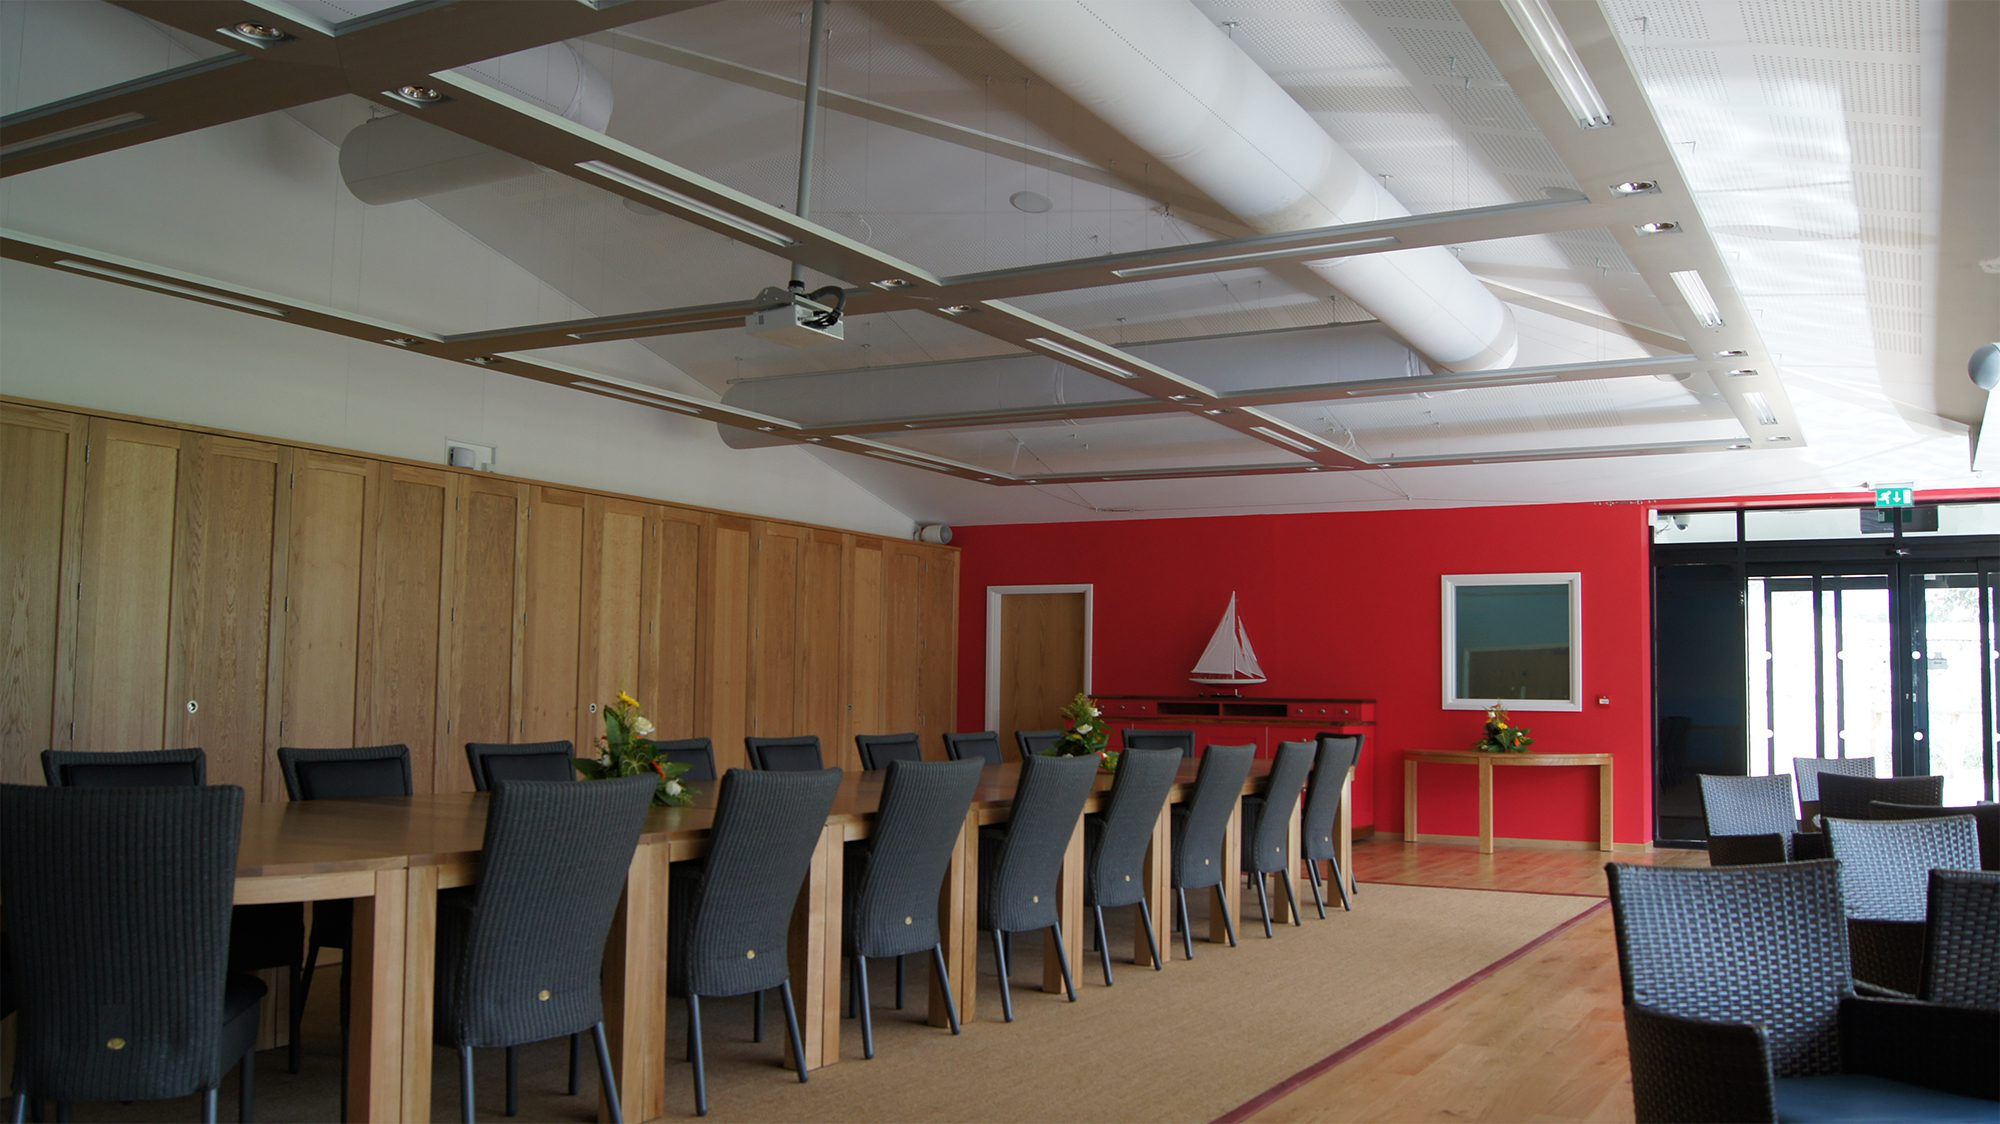 Fabric ducts in conference room at Twycross Zoo